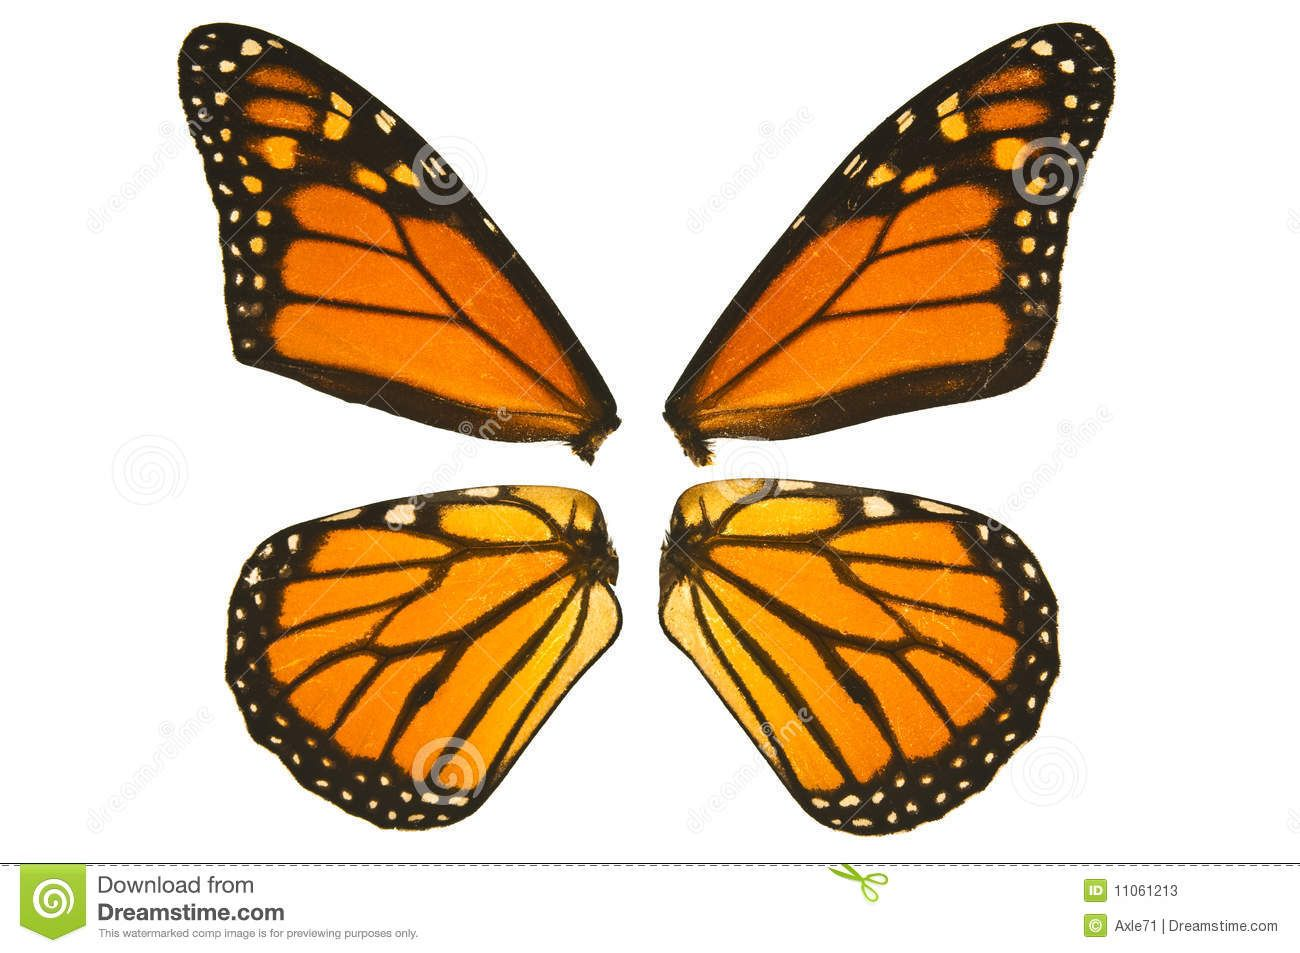 attaching butterfly wings - Google Search | Costume ...